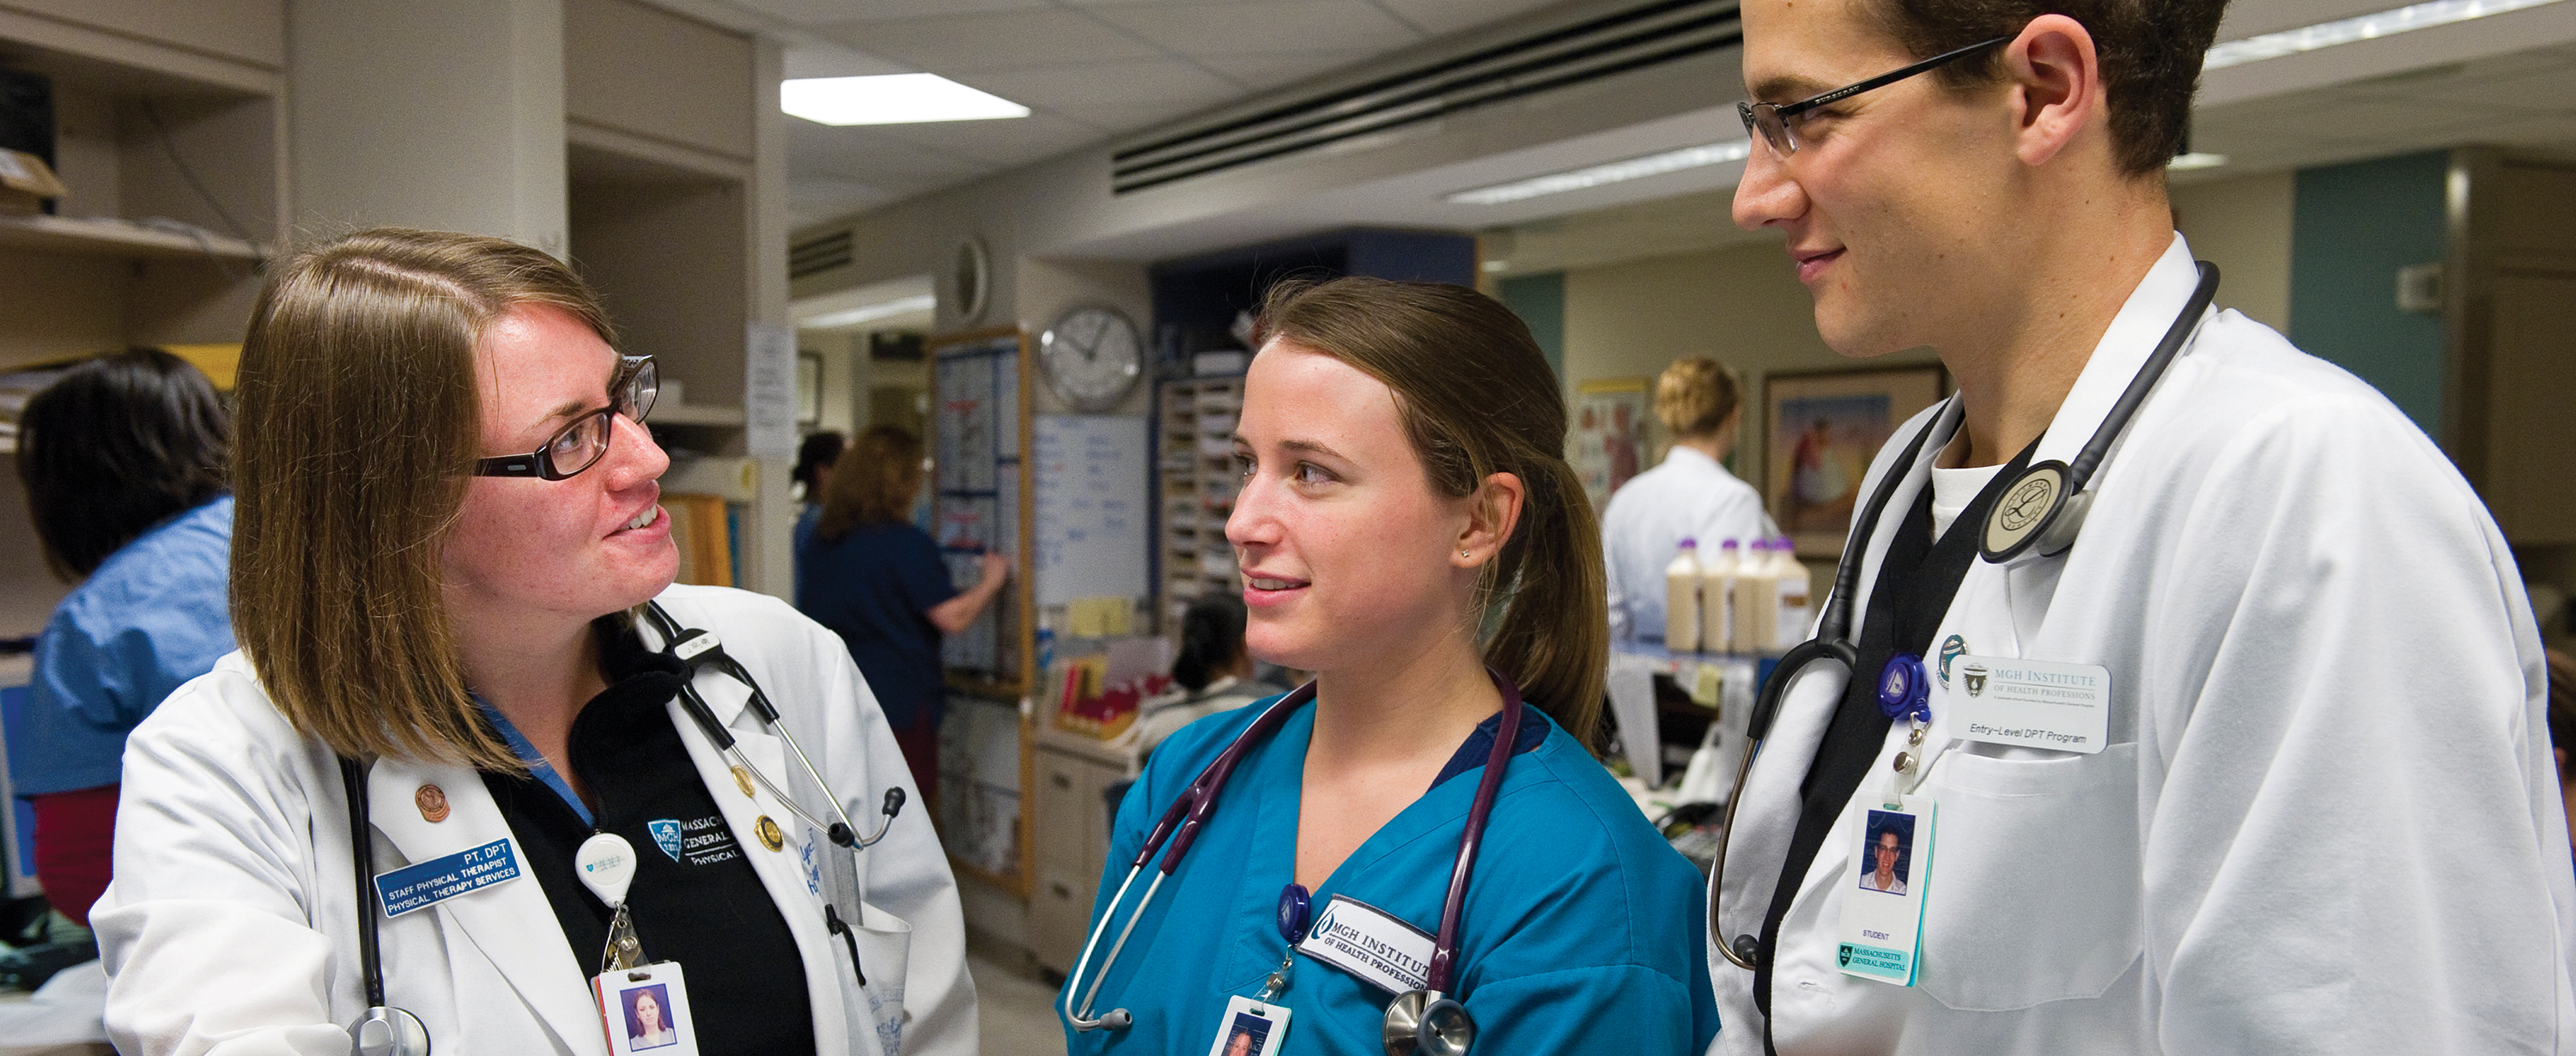 Degree online physical therapy - Pt Clinical Supervisor At Mass General Hospital Working With Two Mgh Institute Students